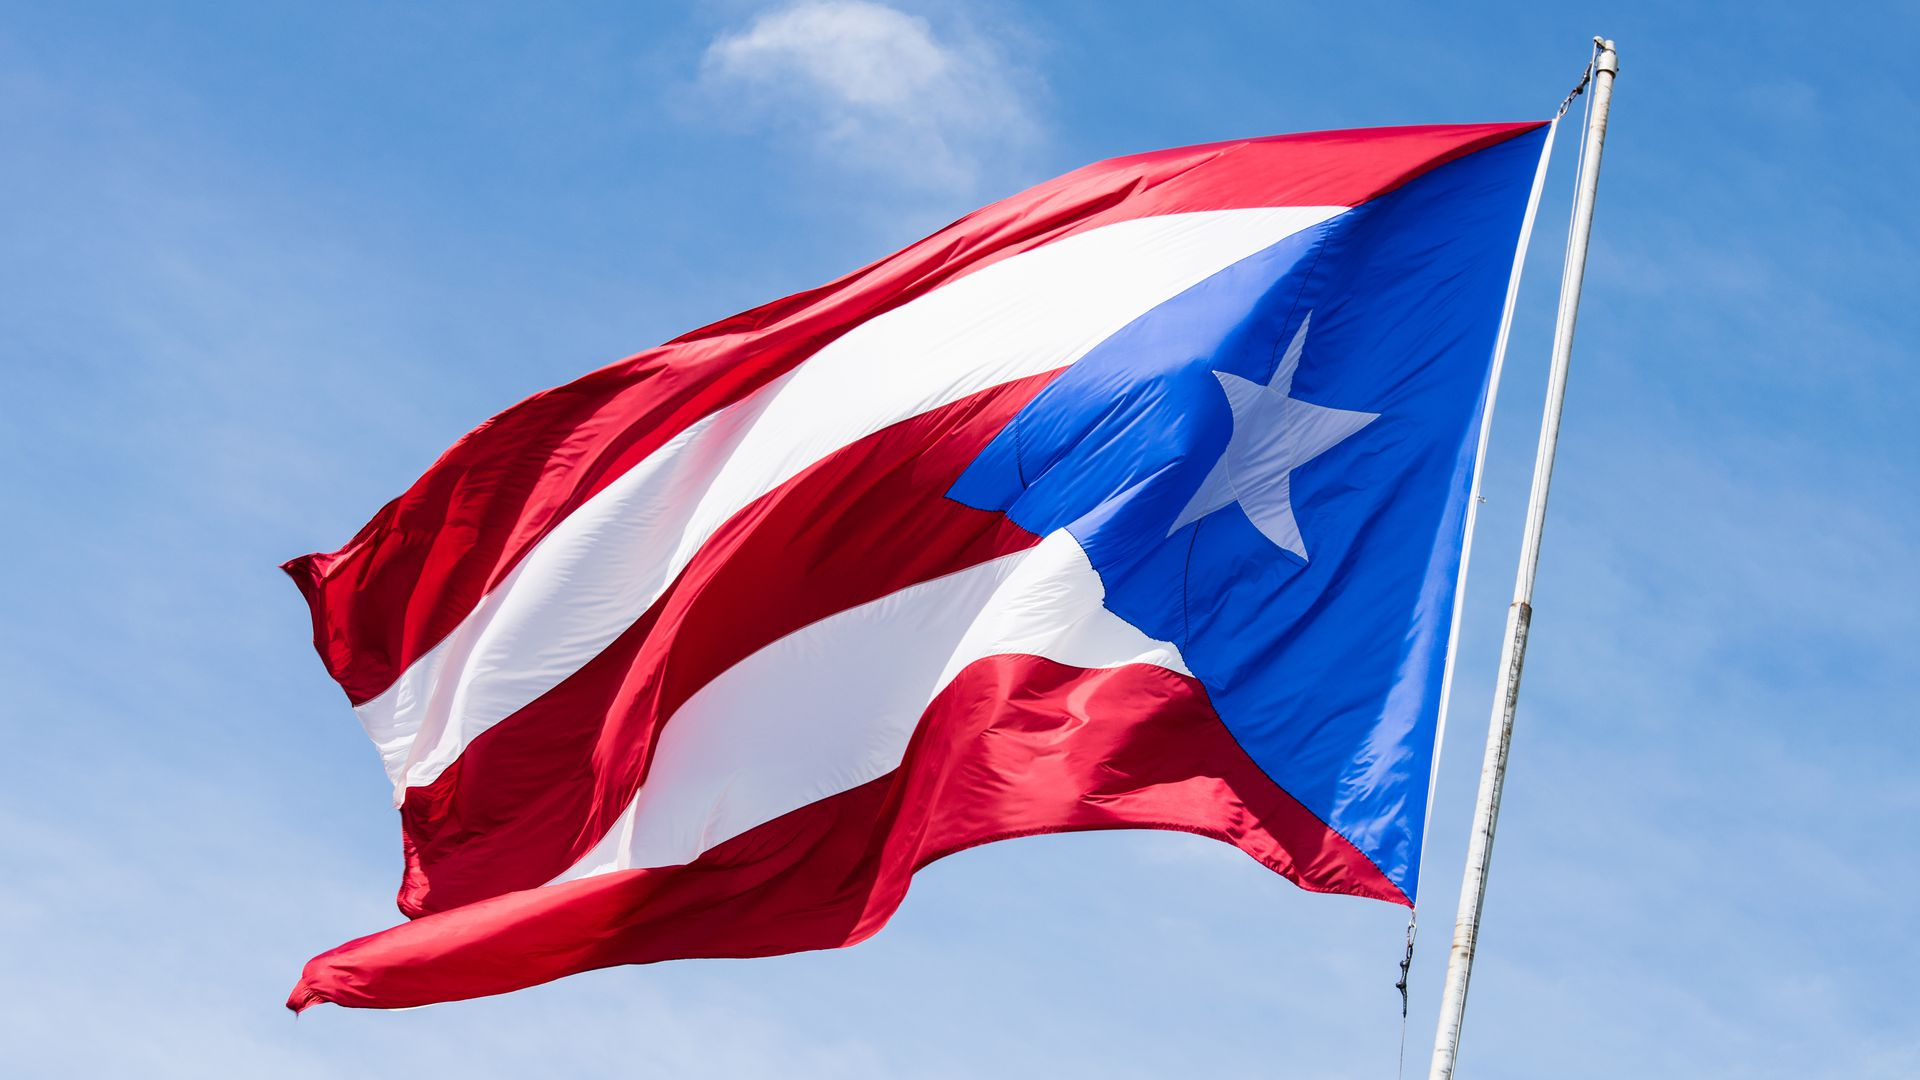 The flag of Puerto Rico, a U.S. territory.